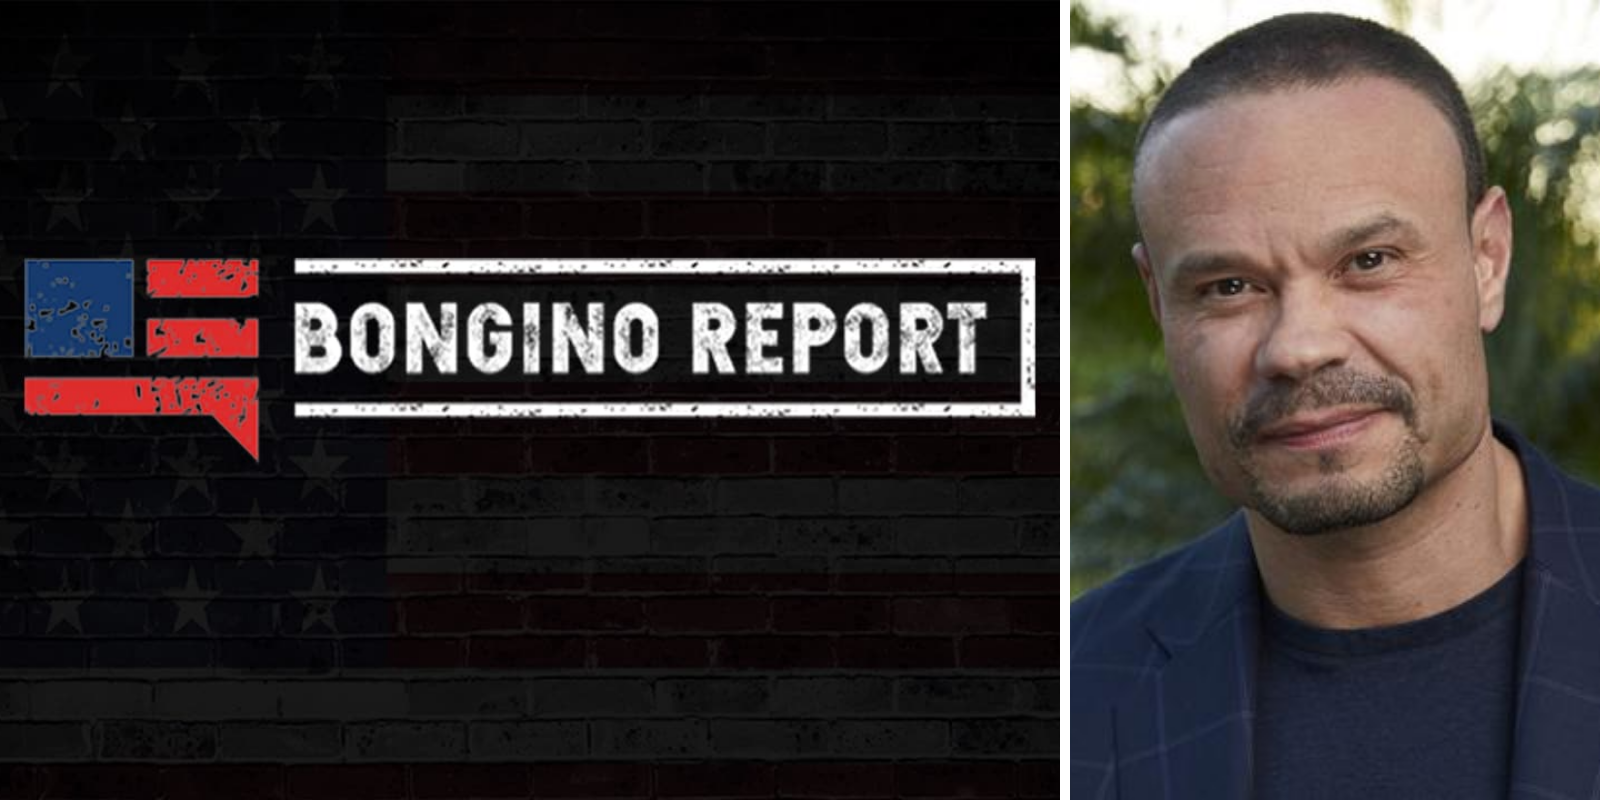 Bongino Report replaces Drudge Report and its liberal drudgery